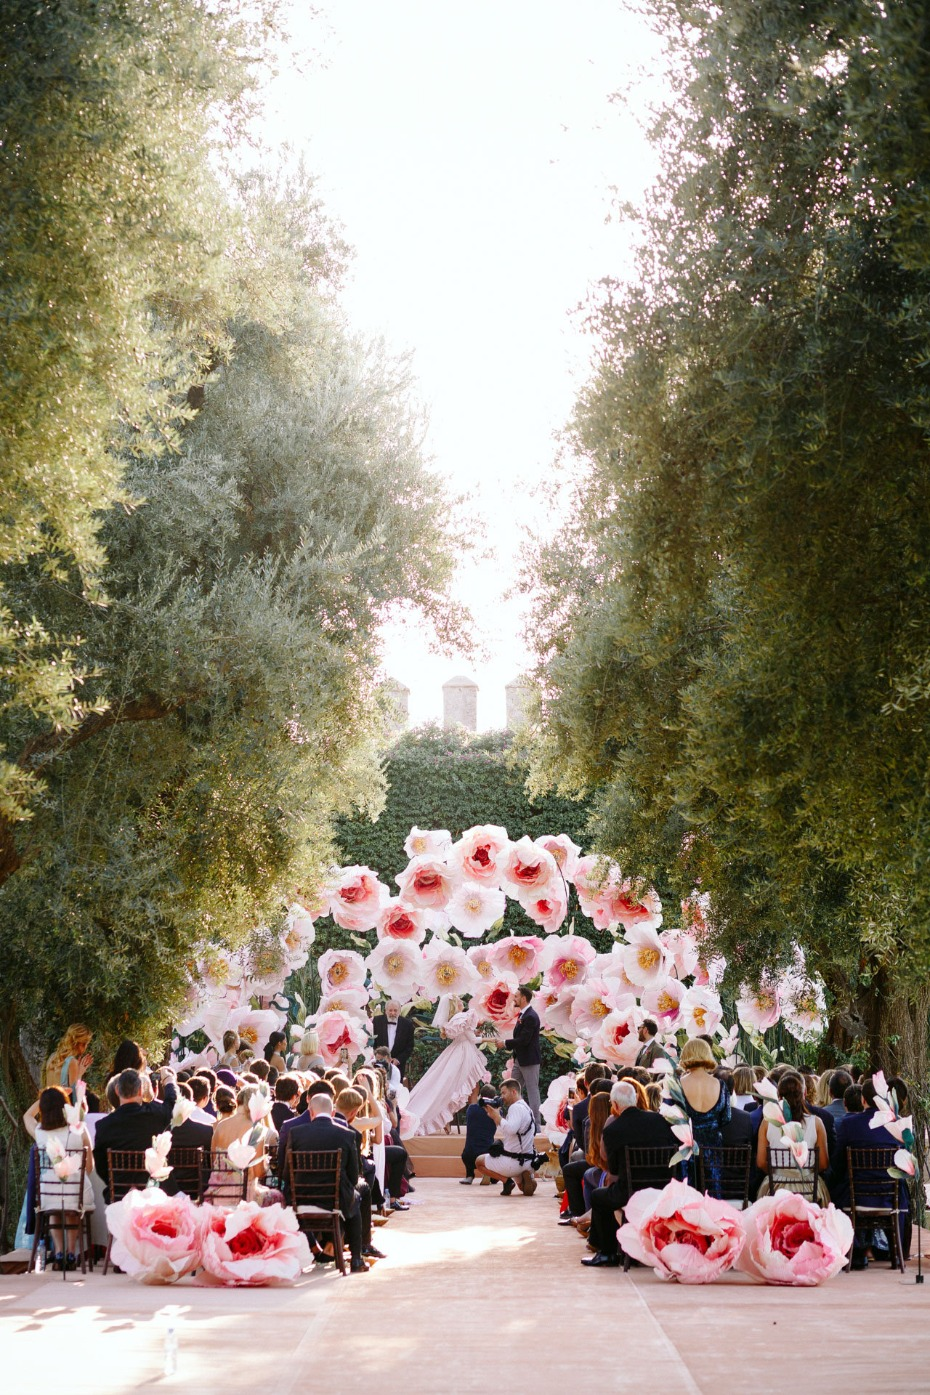 wedding ceremony with giant paper flowers